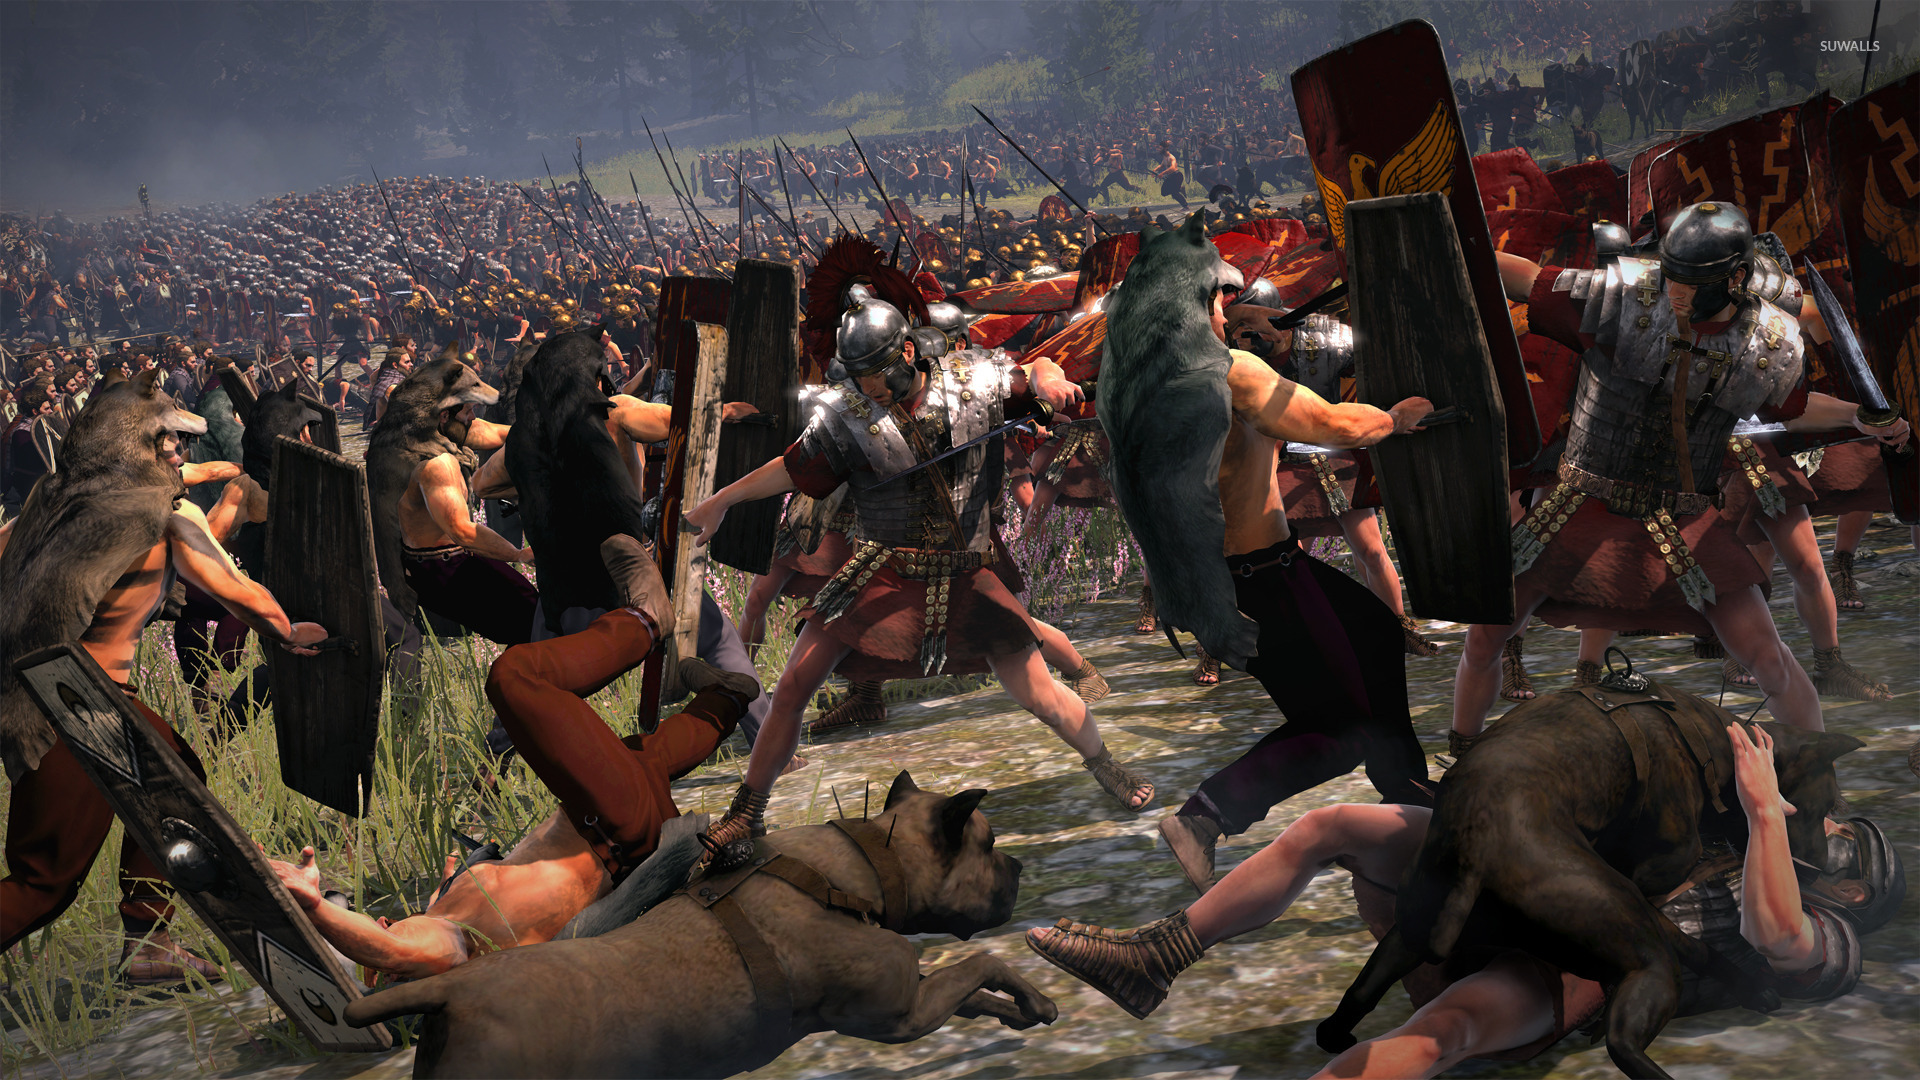 Total War Rome Ii 9 Wallpaper Game Wallpapers 21573